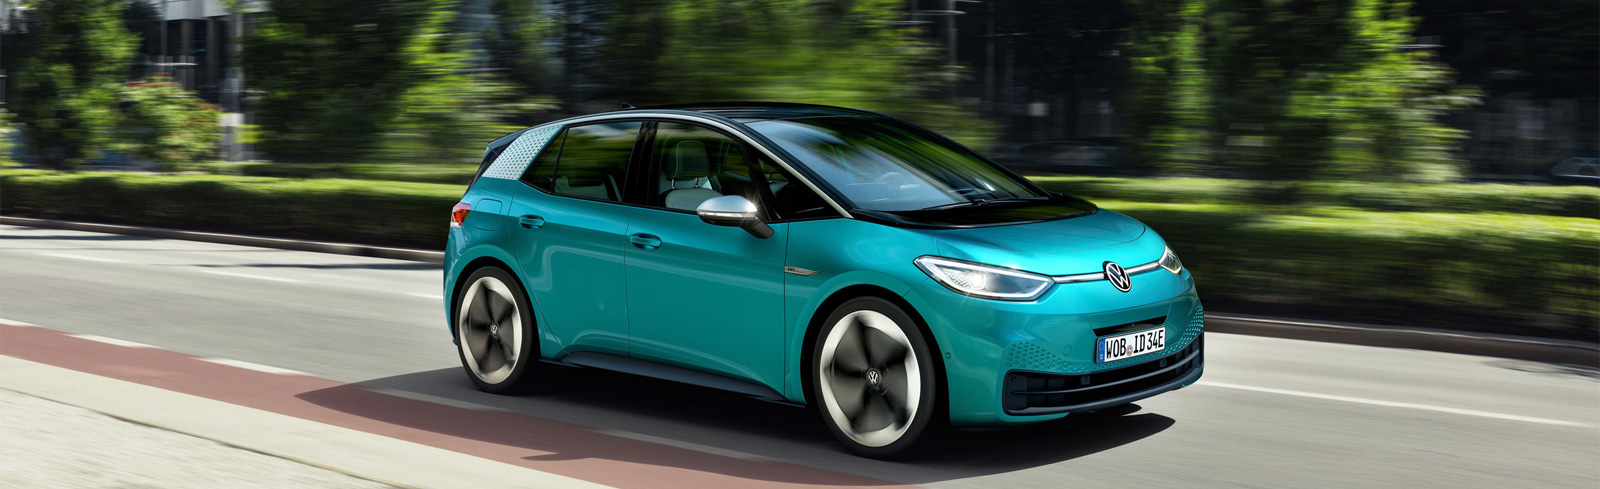 The Volkswagen ID. Charger goes on sale in eight European countries